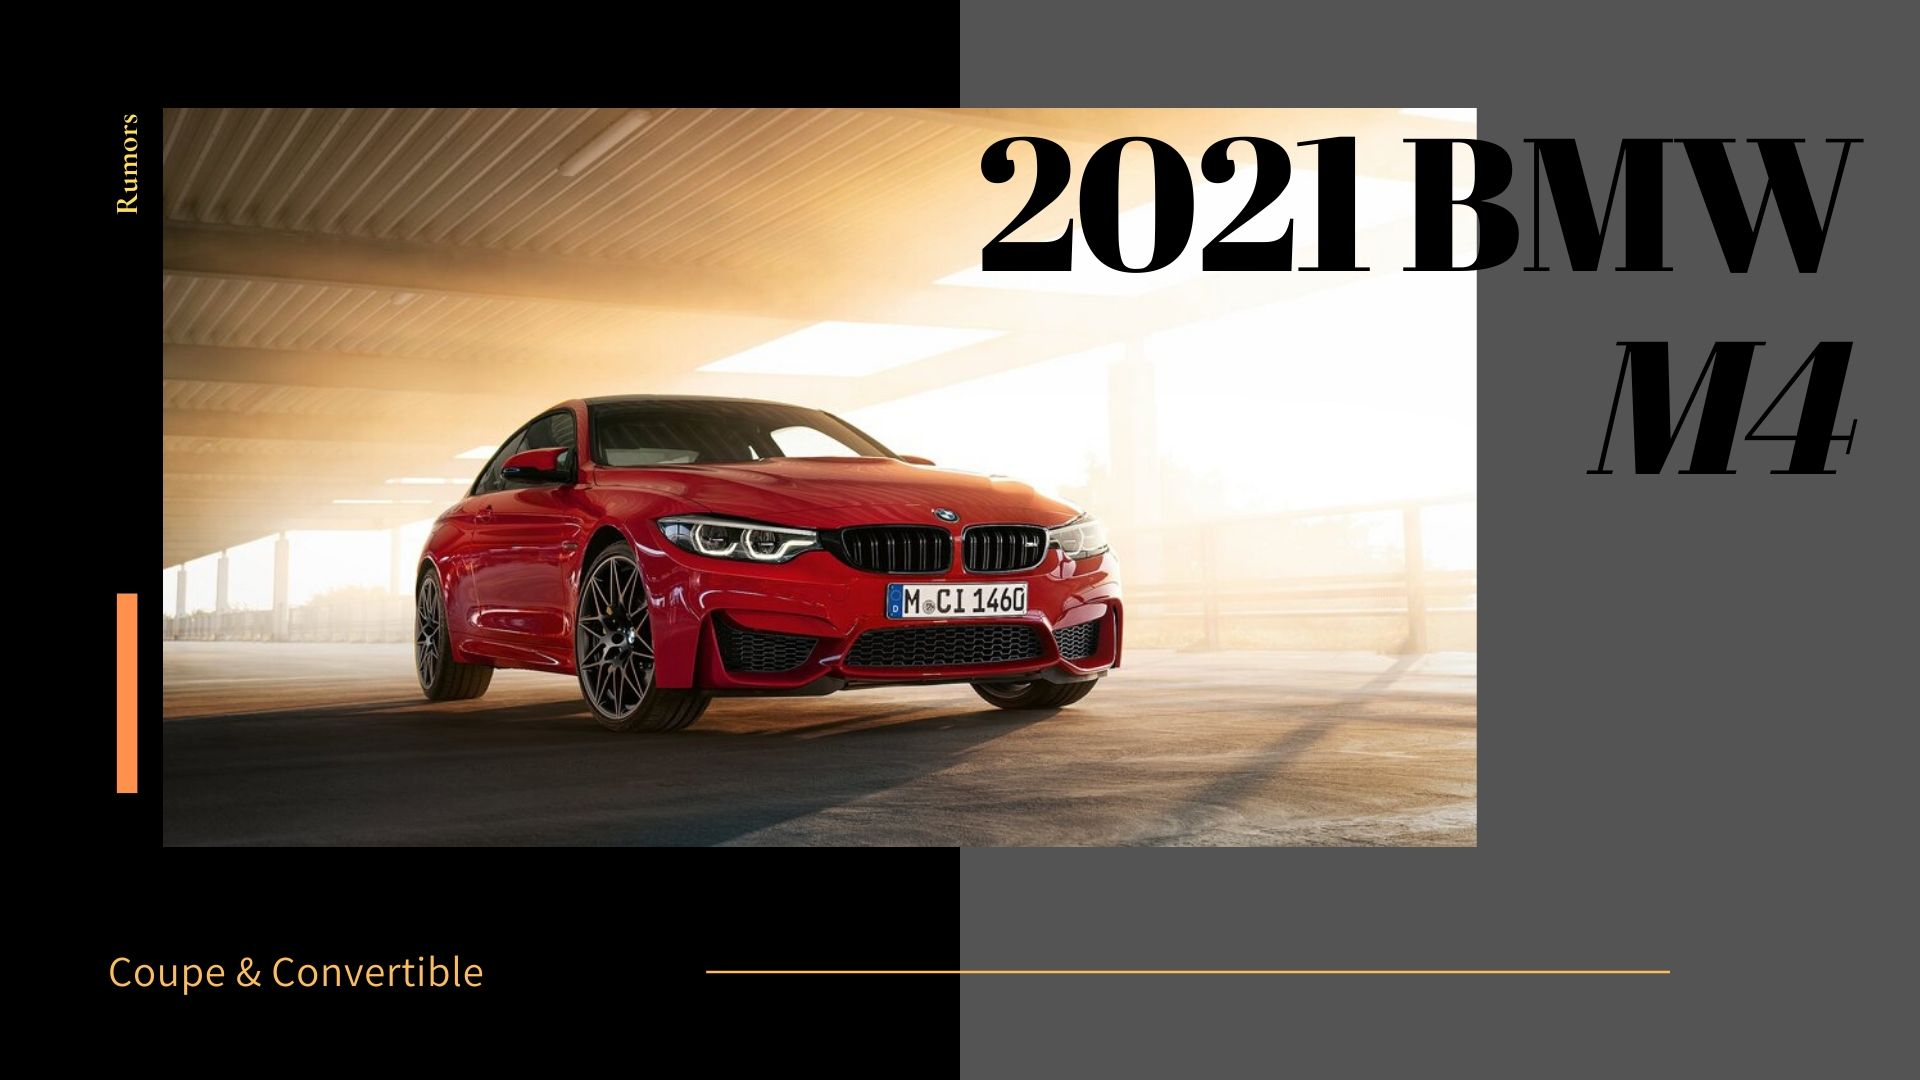 2021 BMW M4 Redesign & Updates